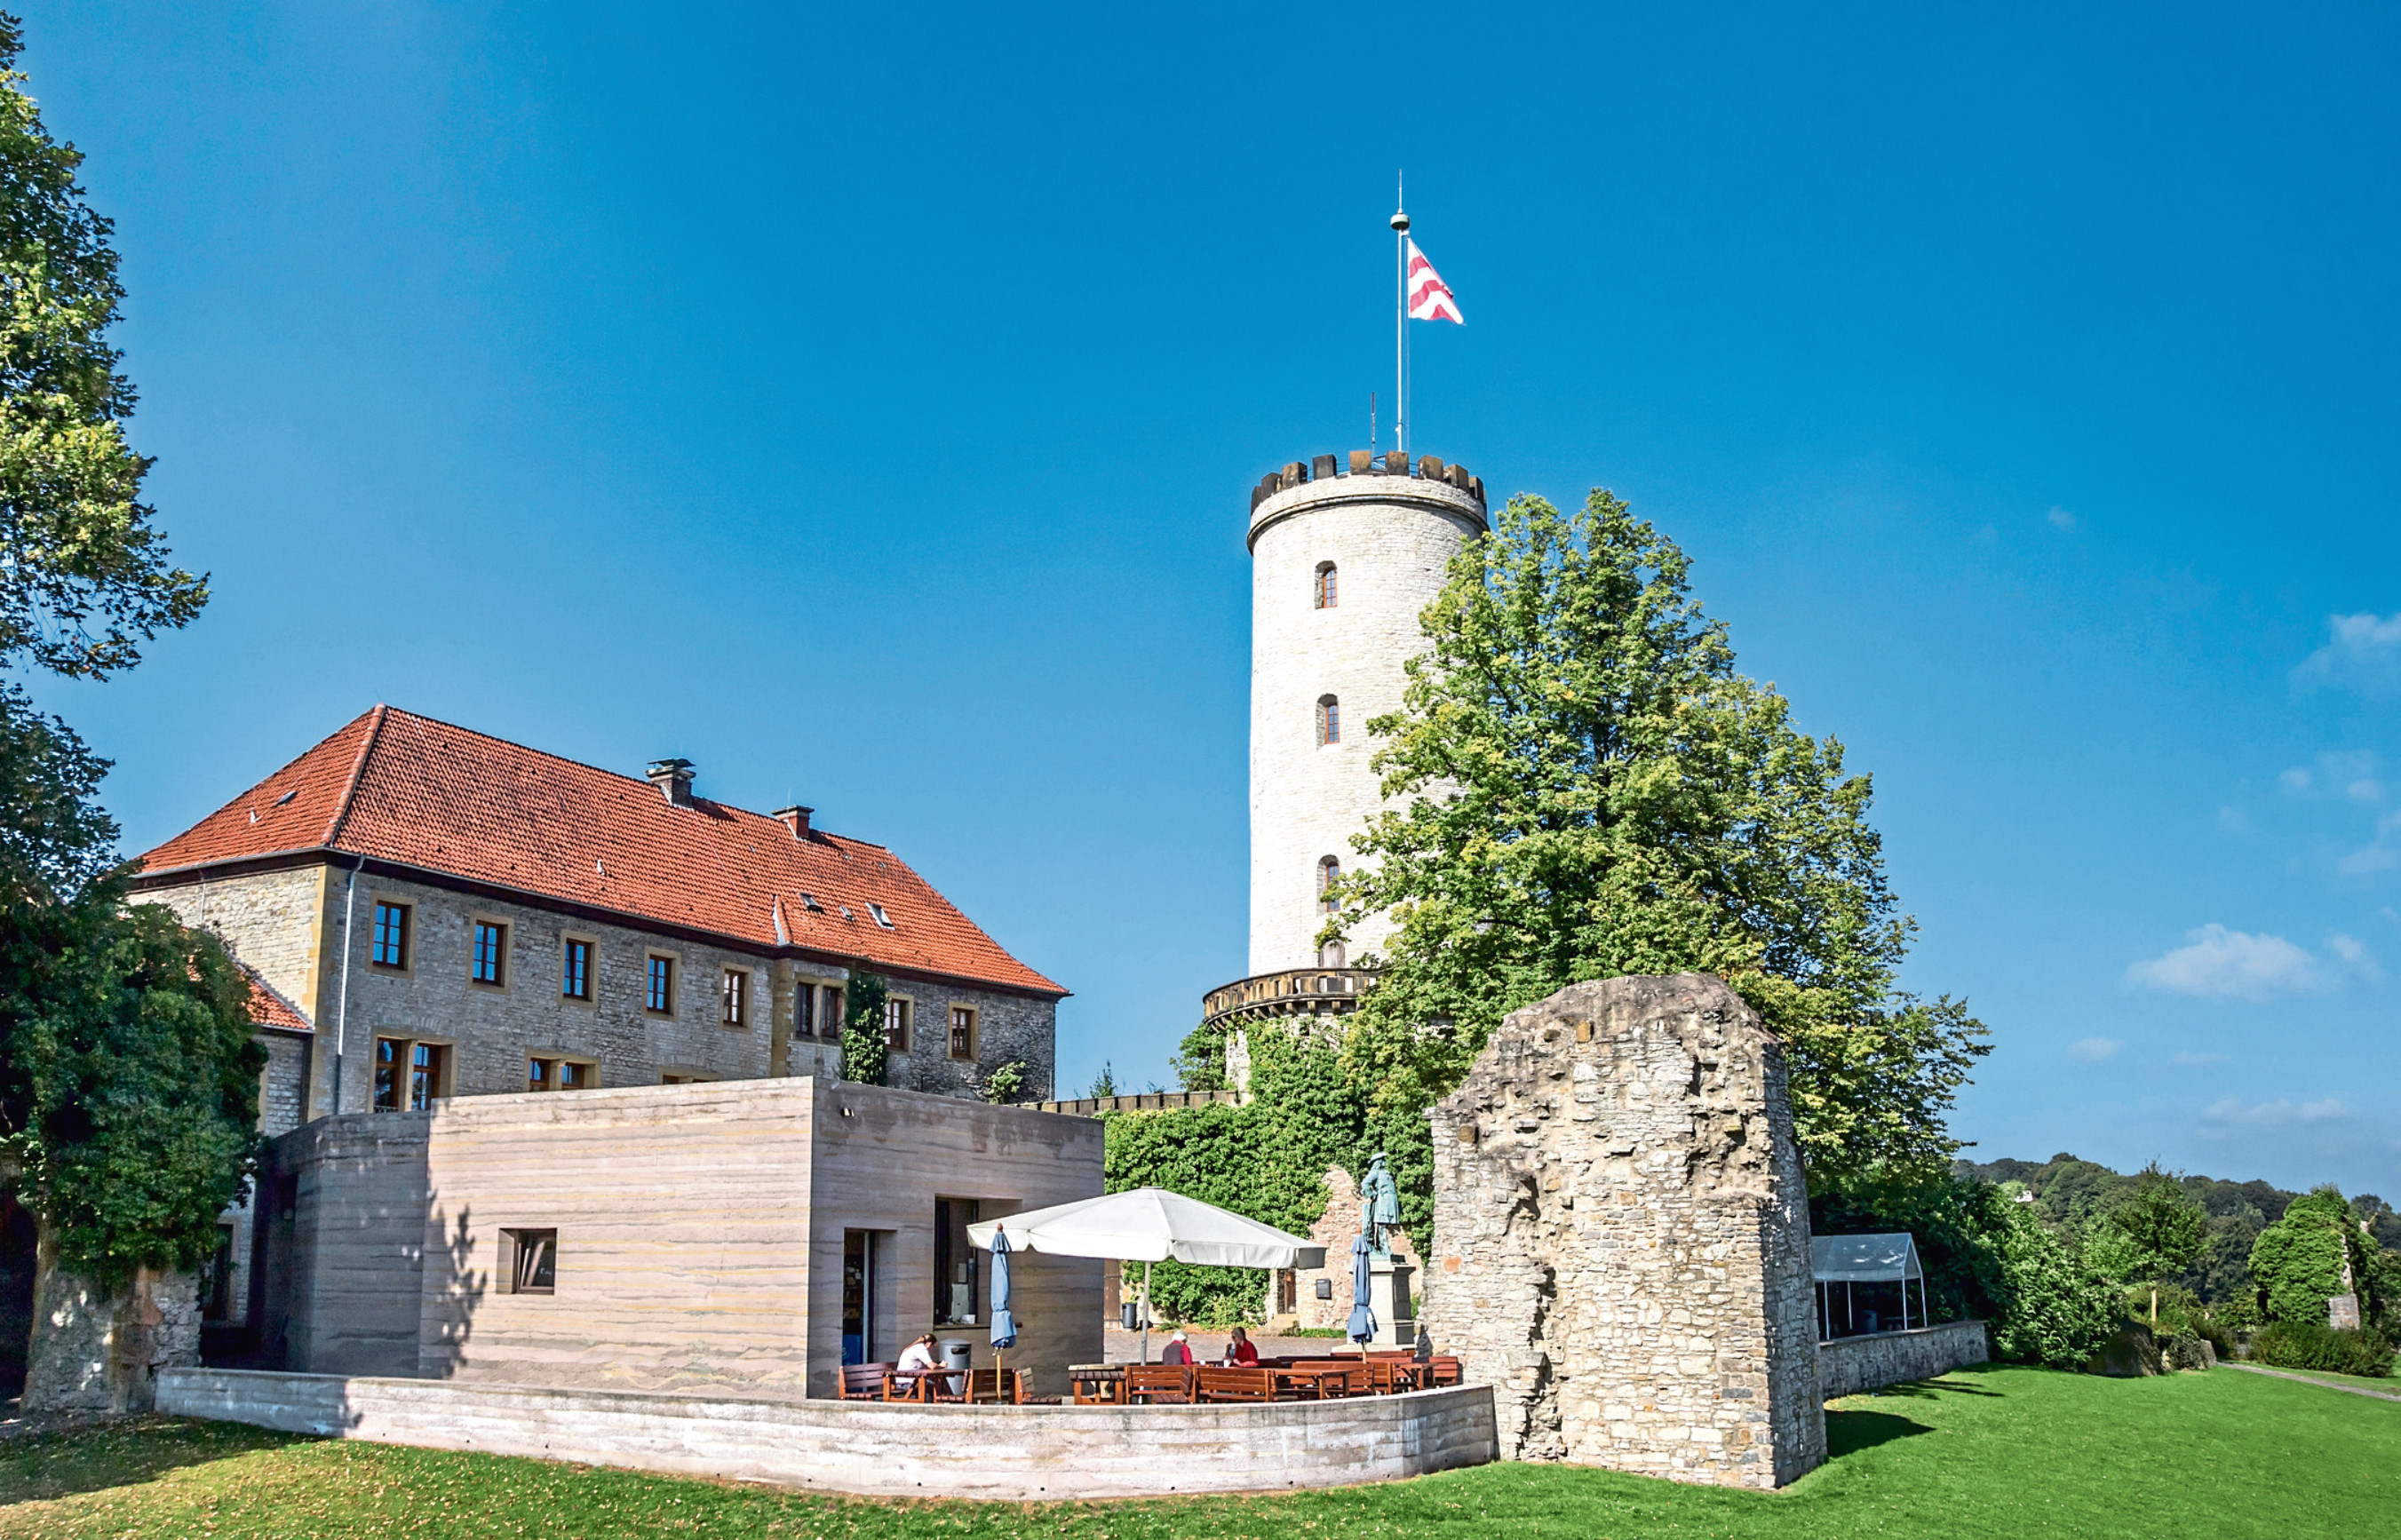 Visitors enjoy lunch at Sparrenburg Castle in Bielefeld. Or do they?